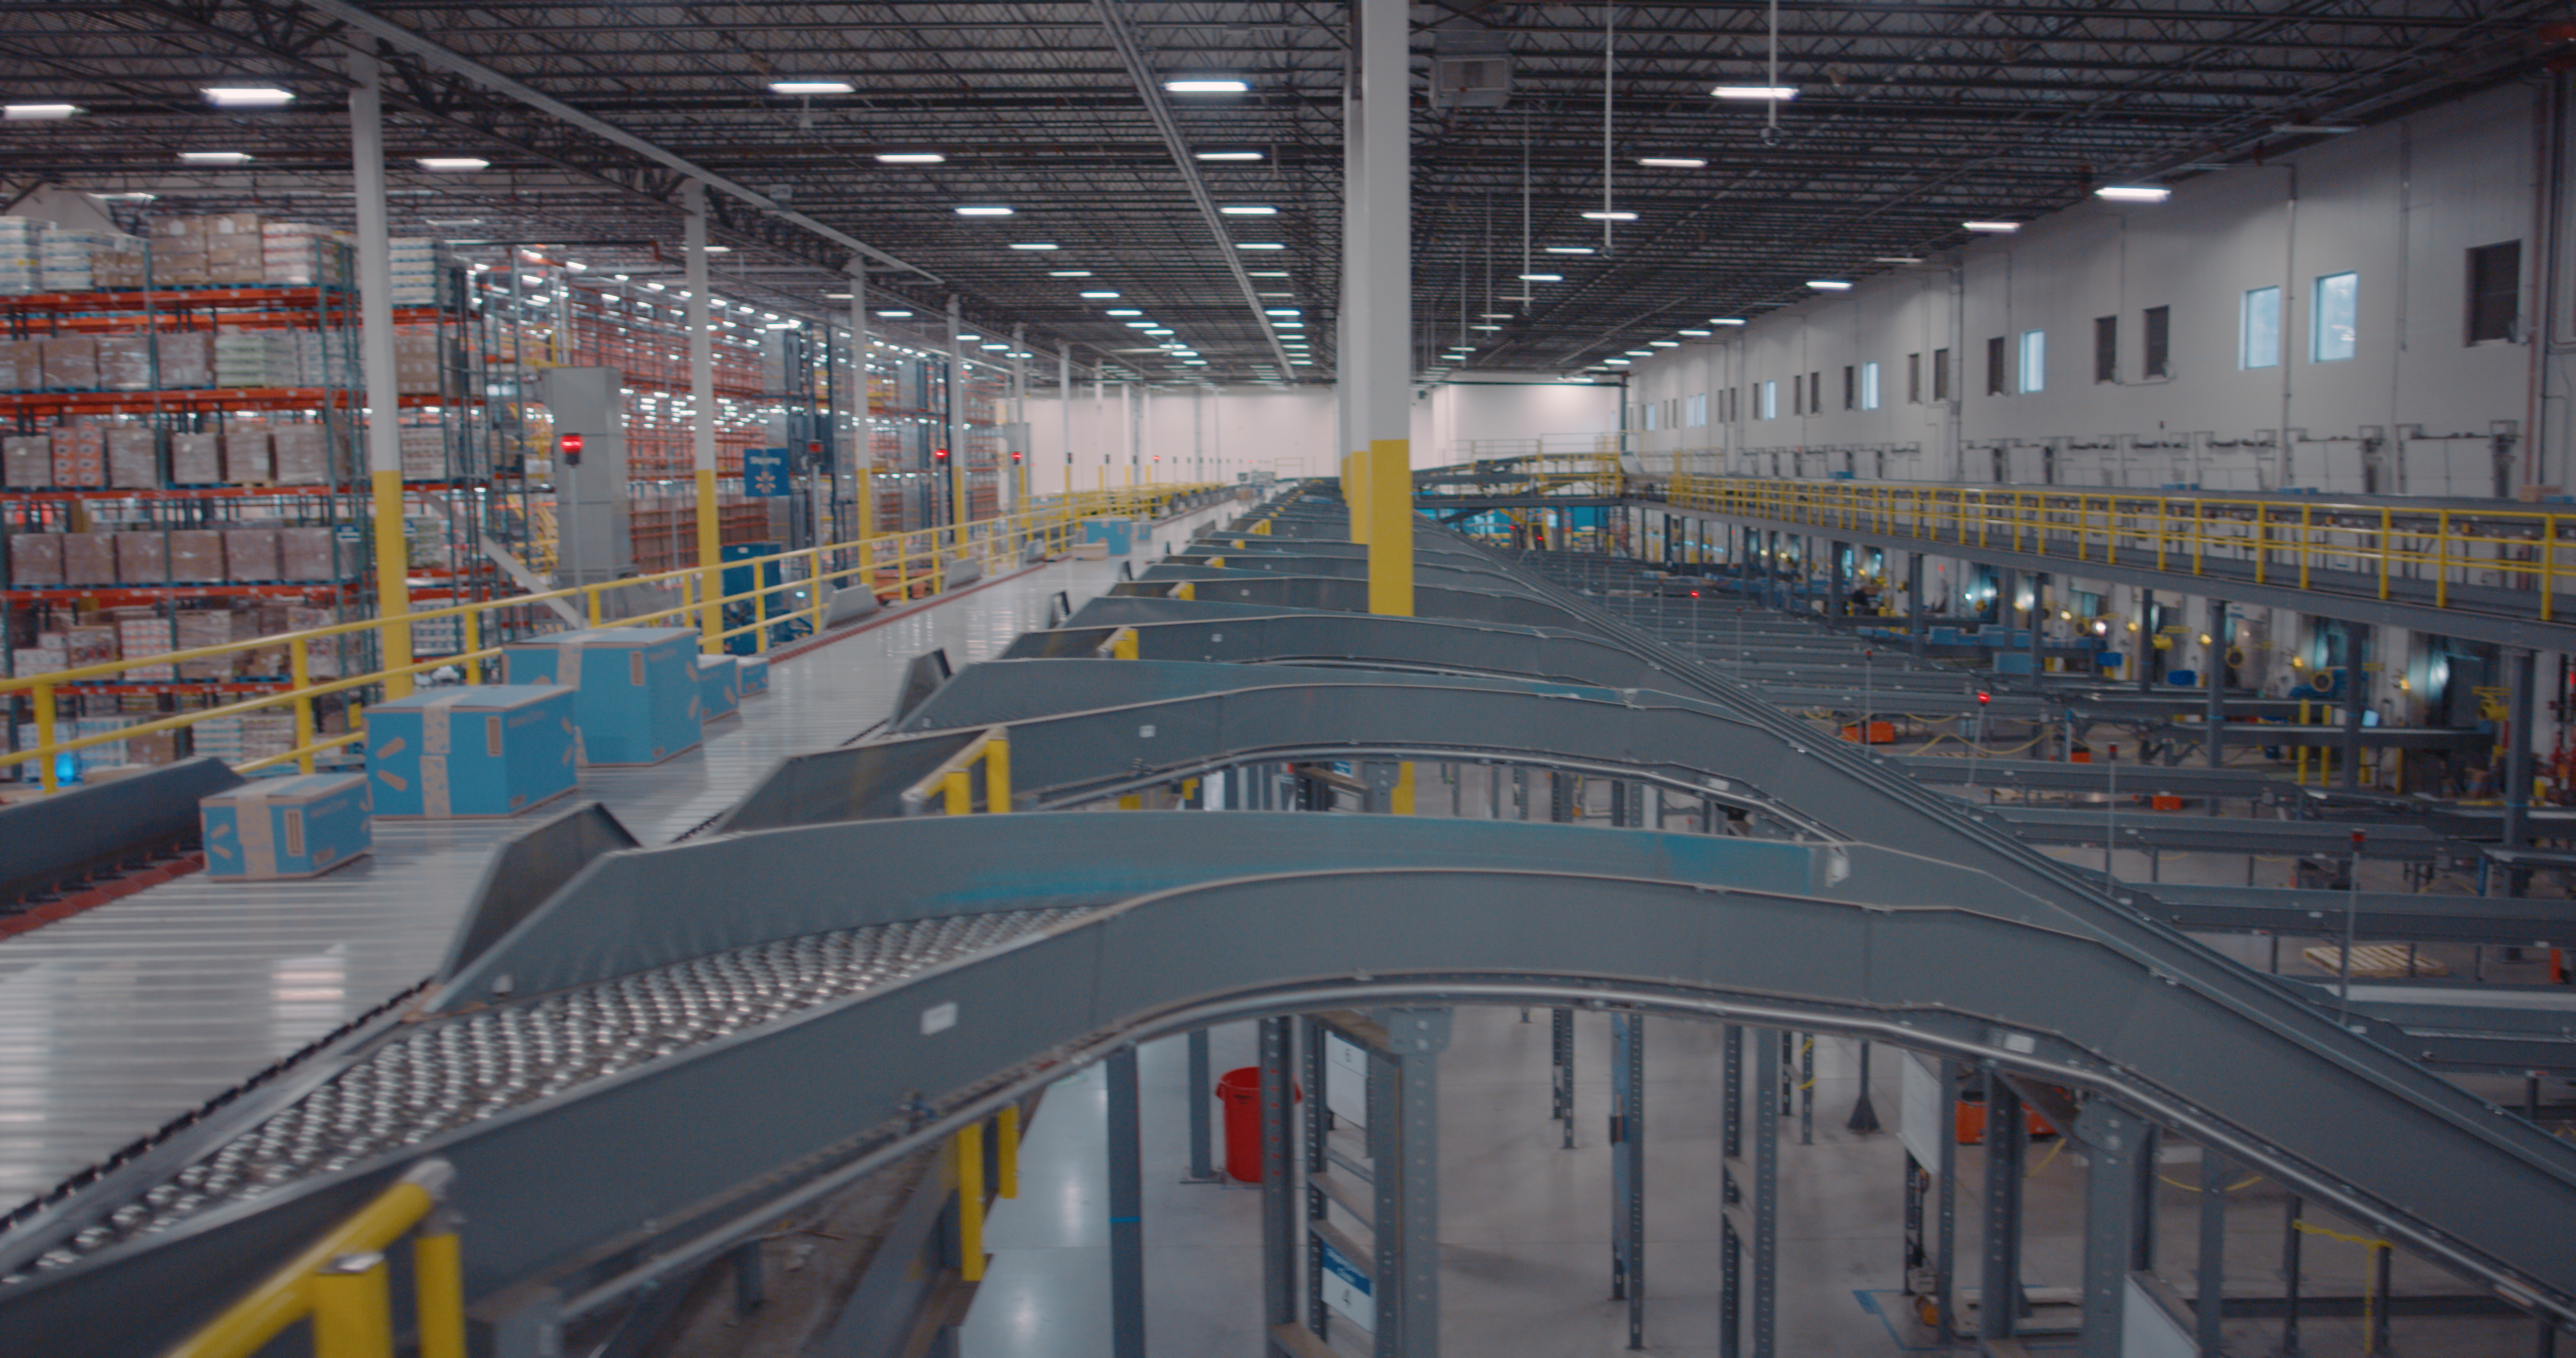 Walmart Fulfillment Services Center (WFS)